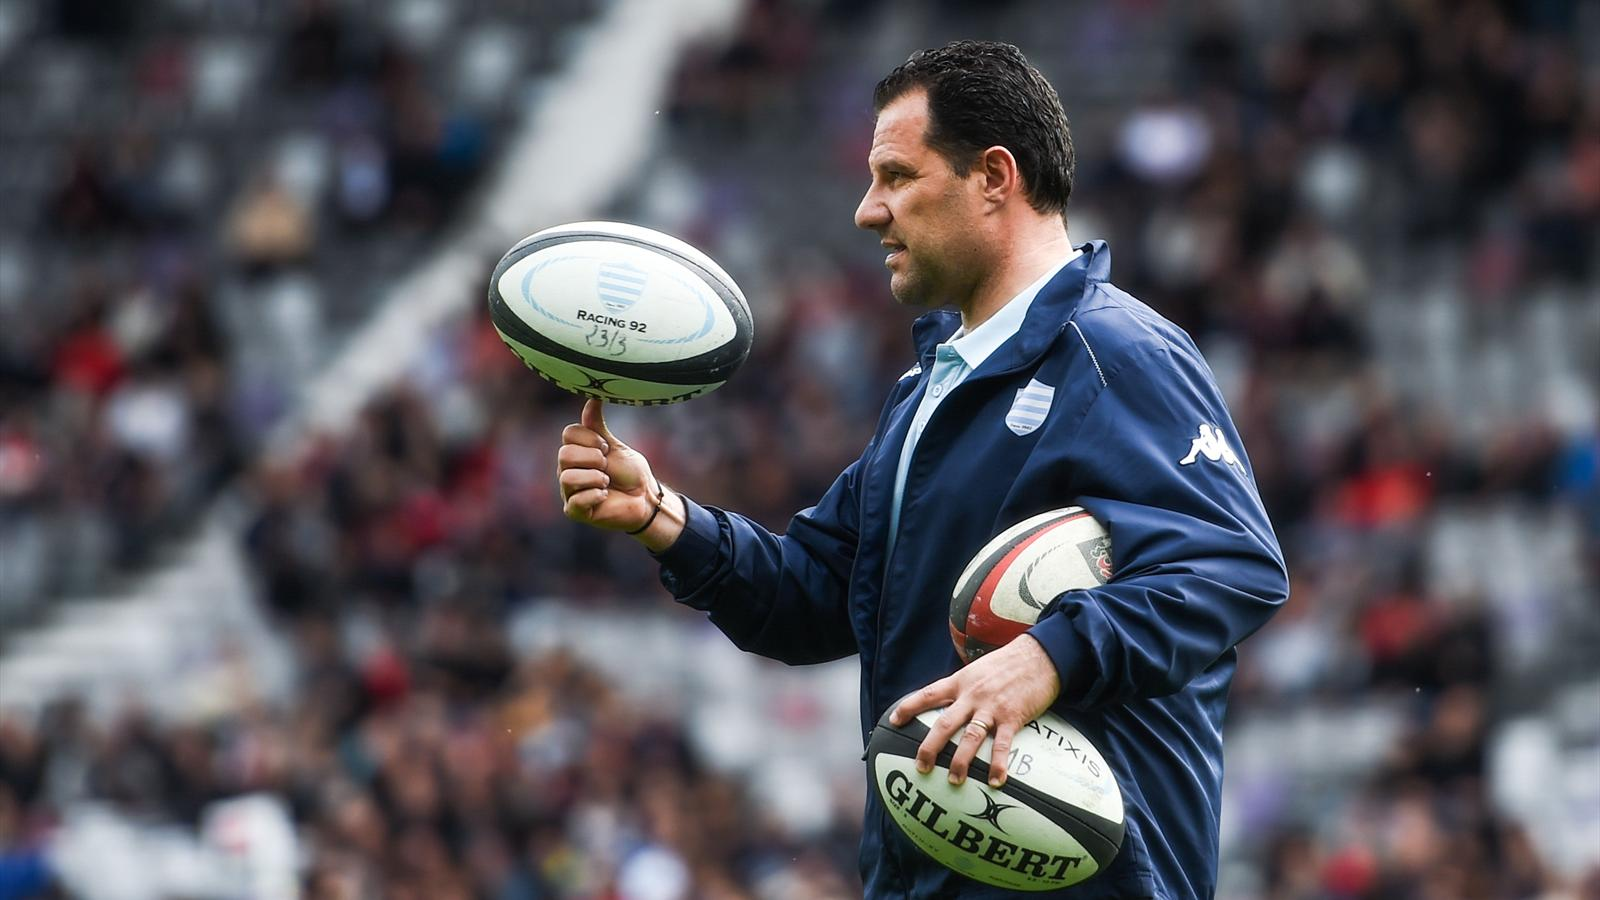 Laurent Labit, l'entraîneur des 3/4 du Racing 92